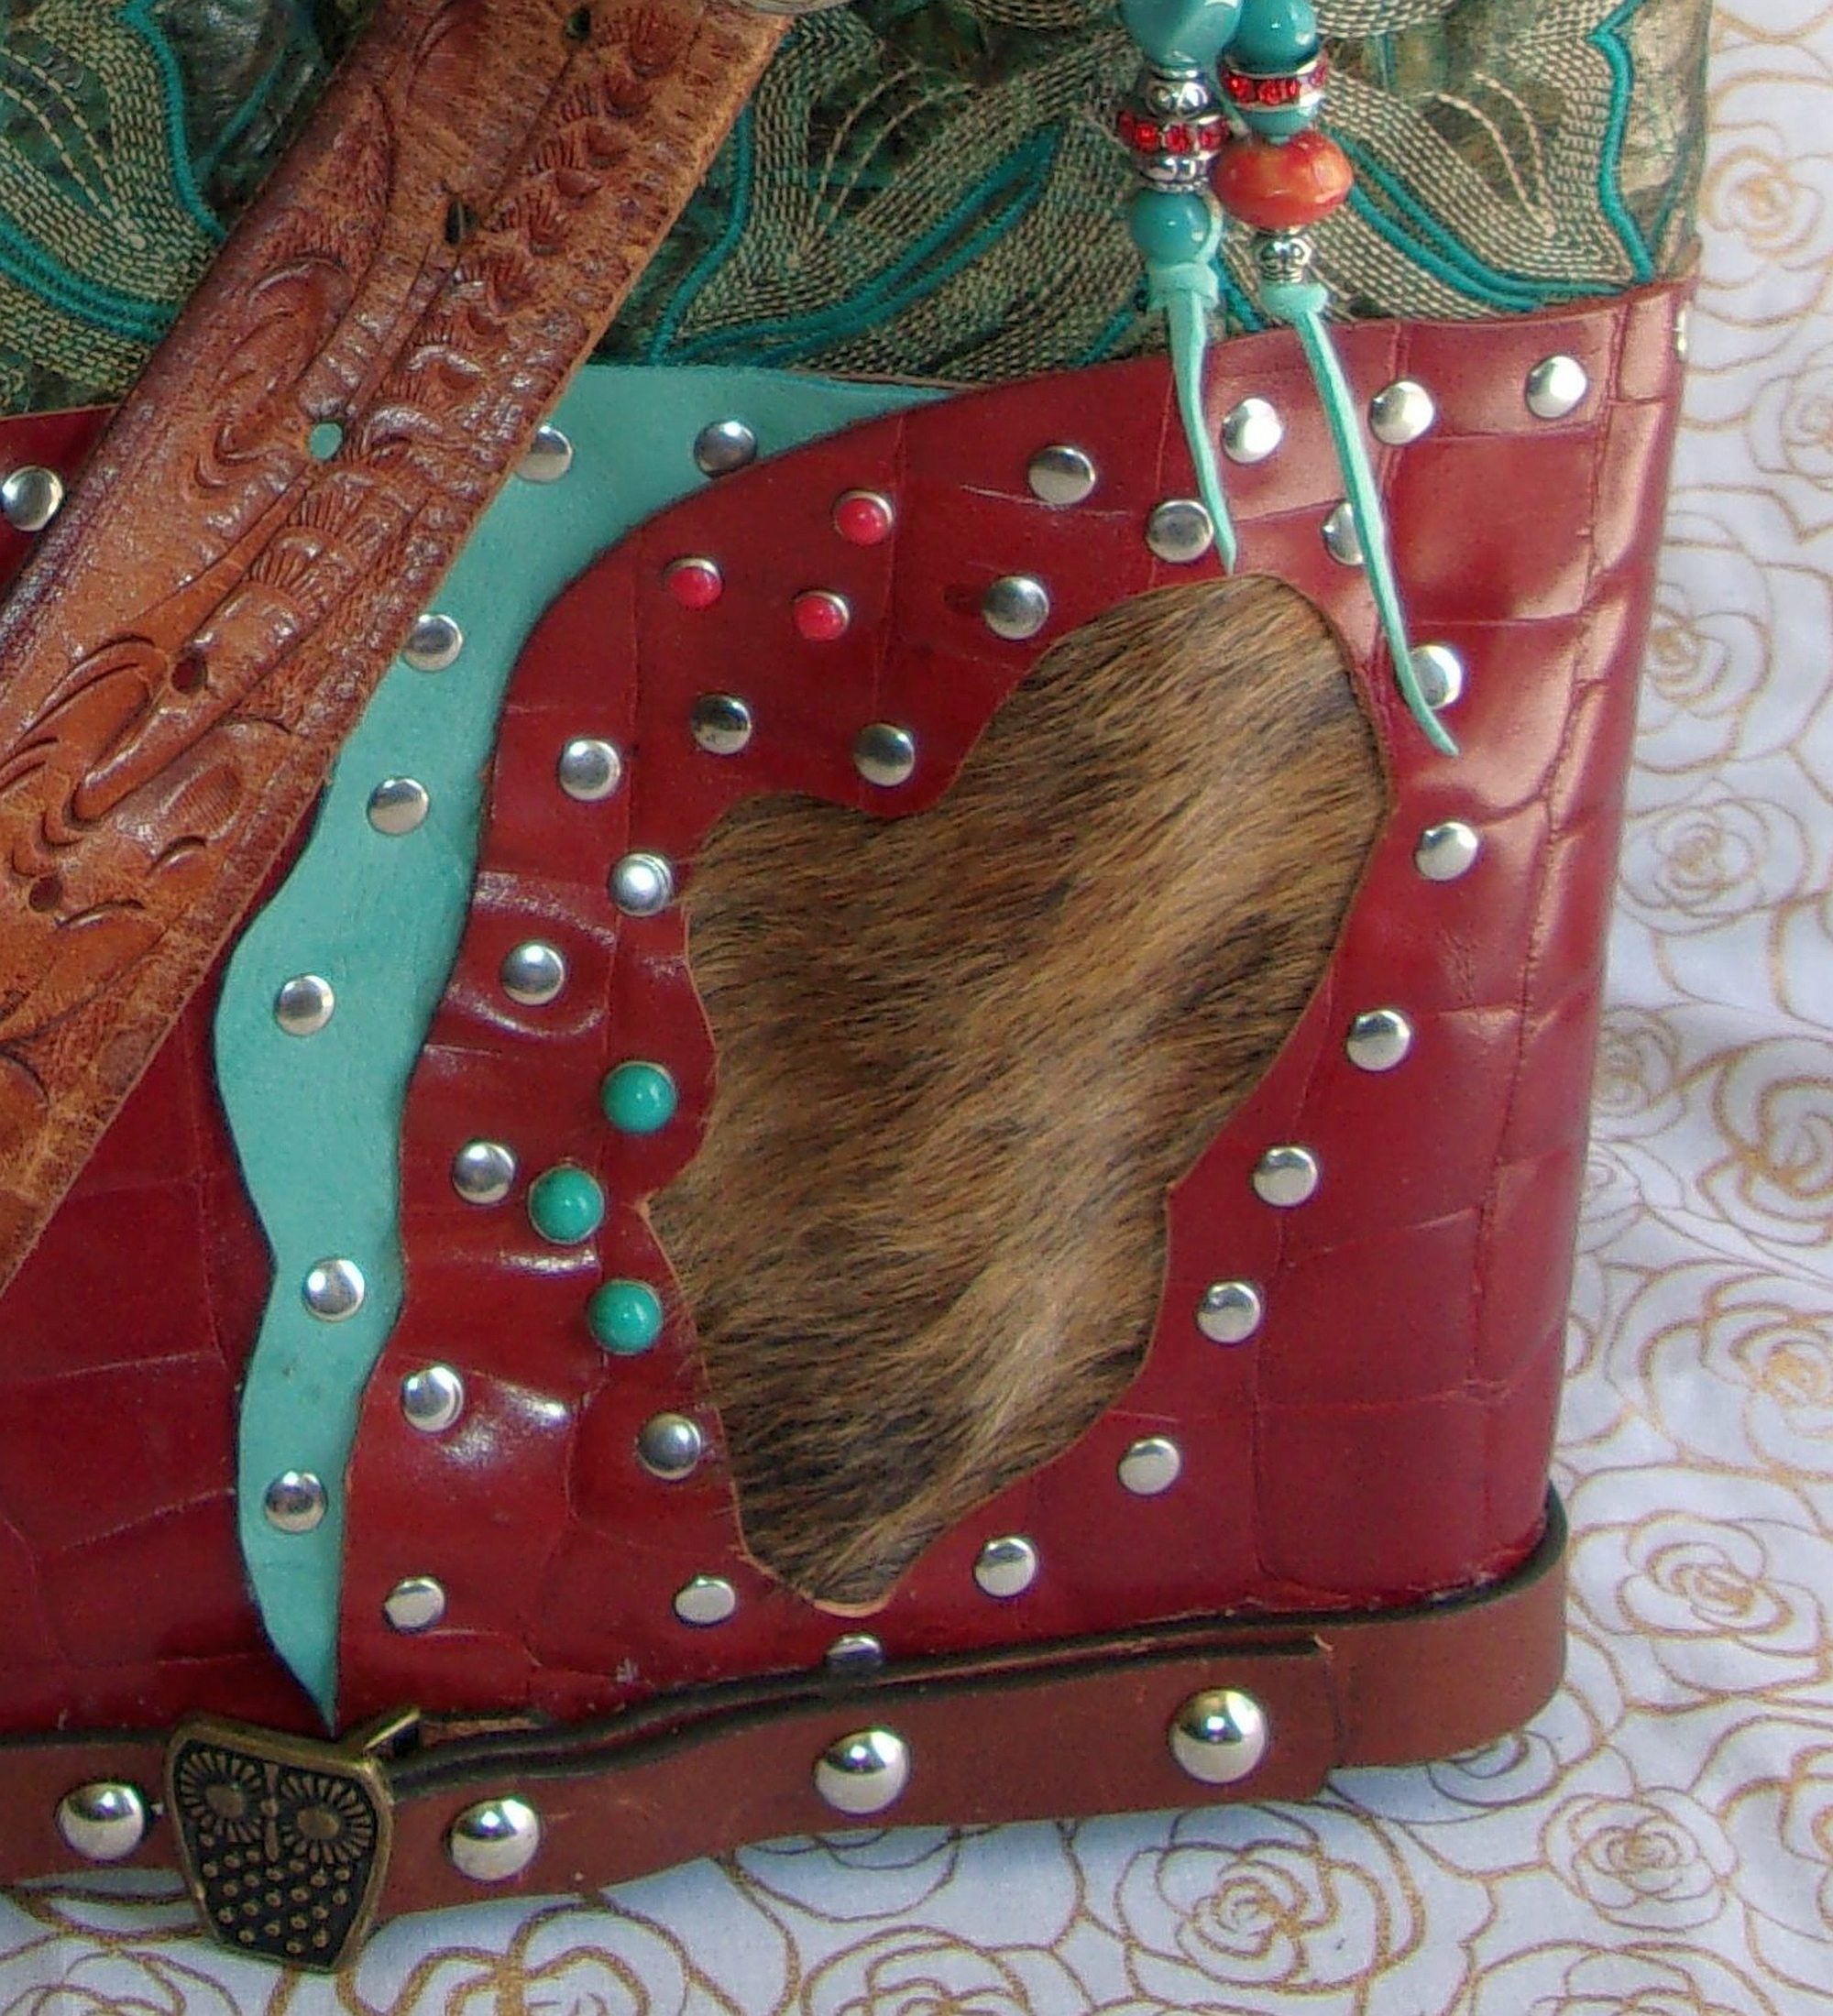 Jade n Red Leather Shoulder Bag TS259 - Cowboy Boot Purses by Chris Thompson for Distinctive Western Fashion